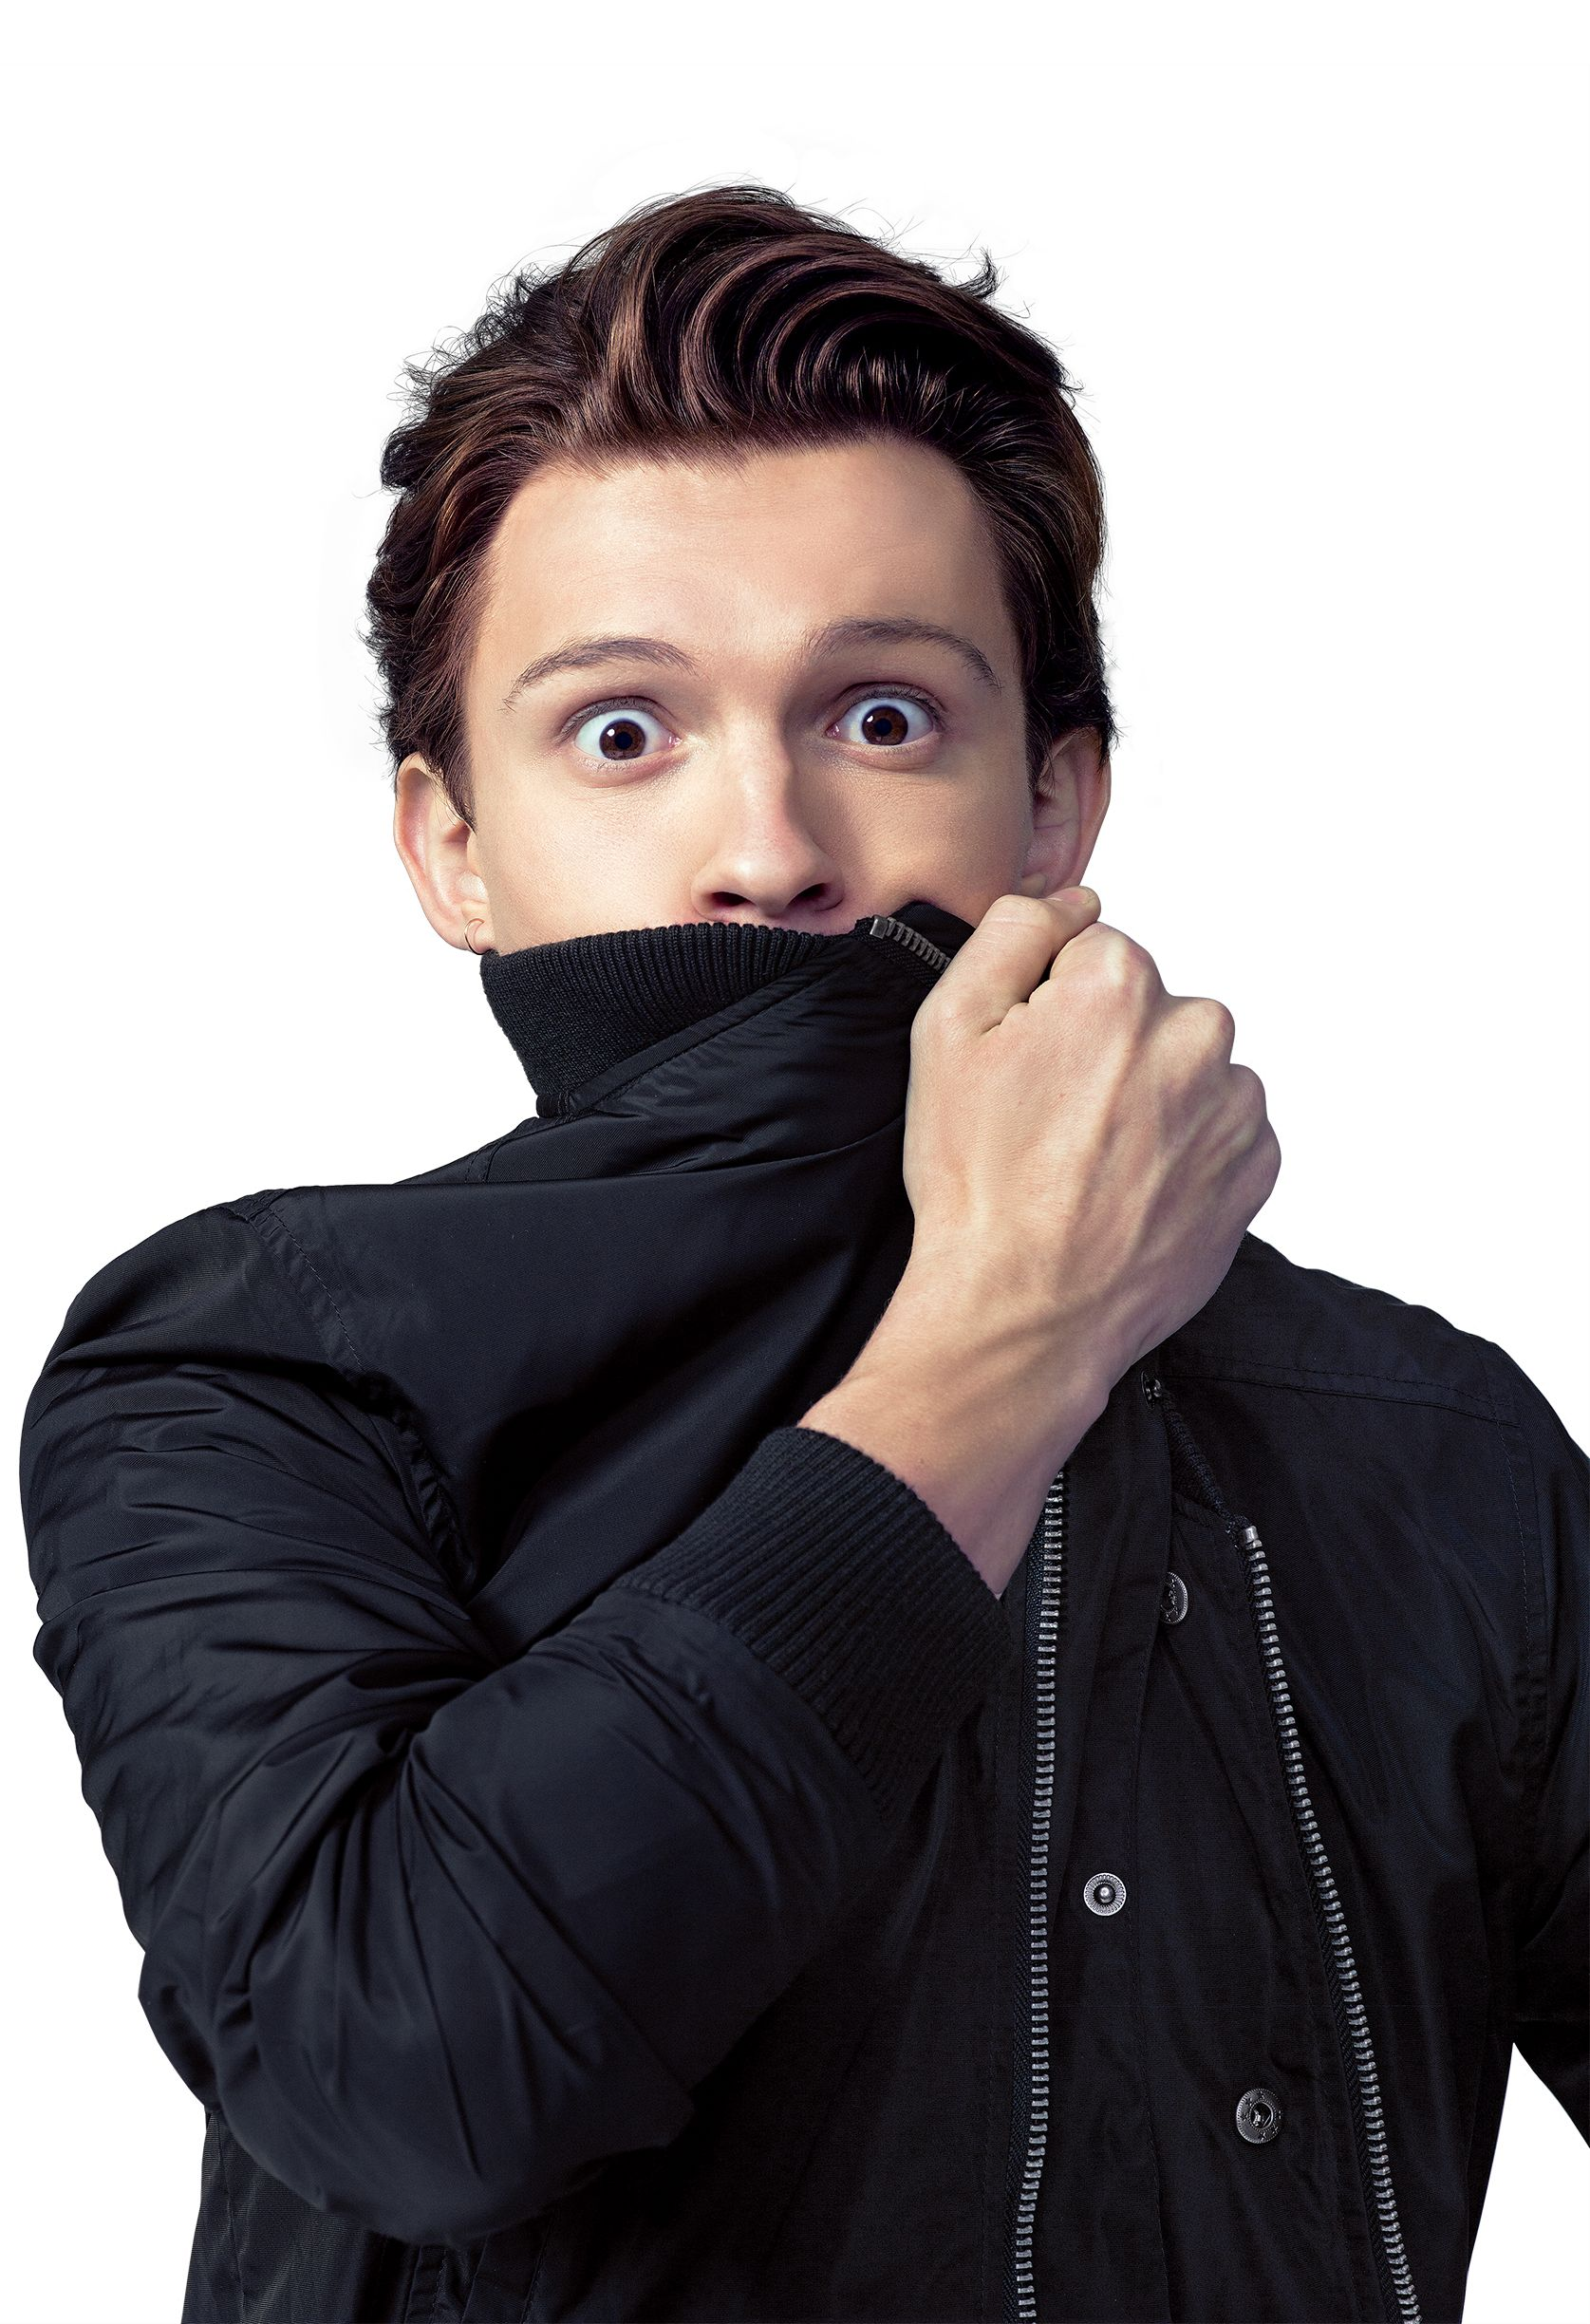 Rihanna Transparent Background >> Tom Holland photo gallery - high quality pics of Tom Holland | ThePlace